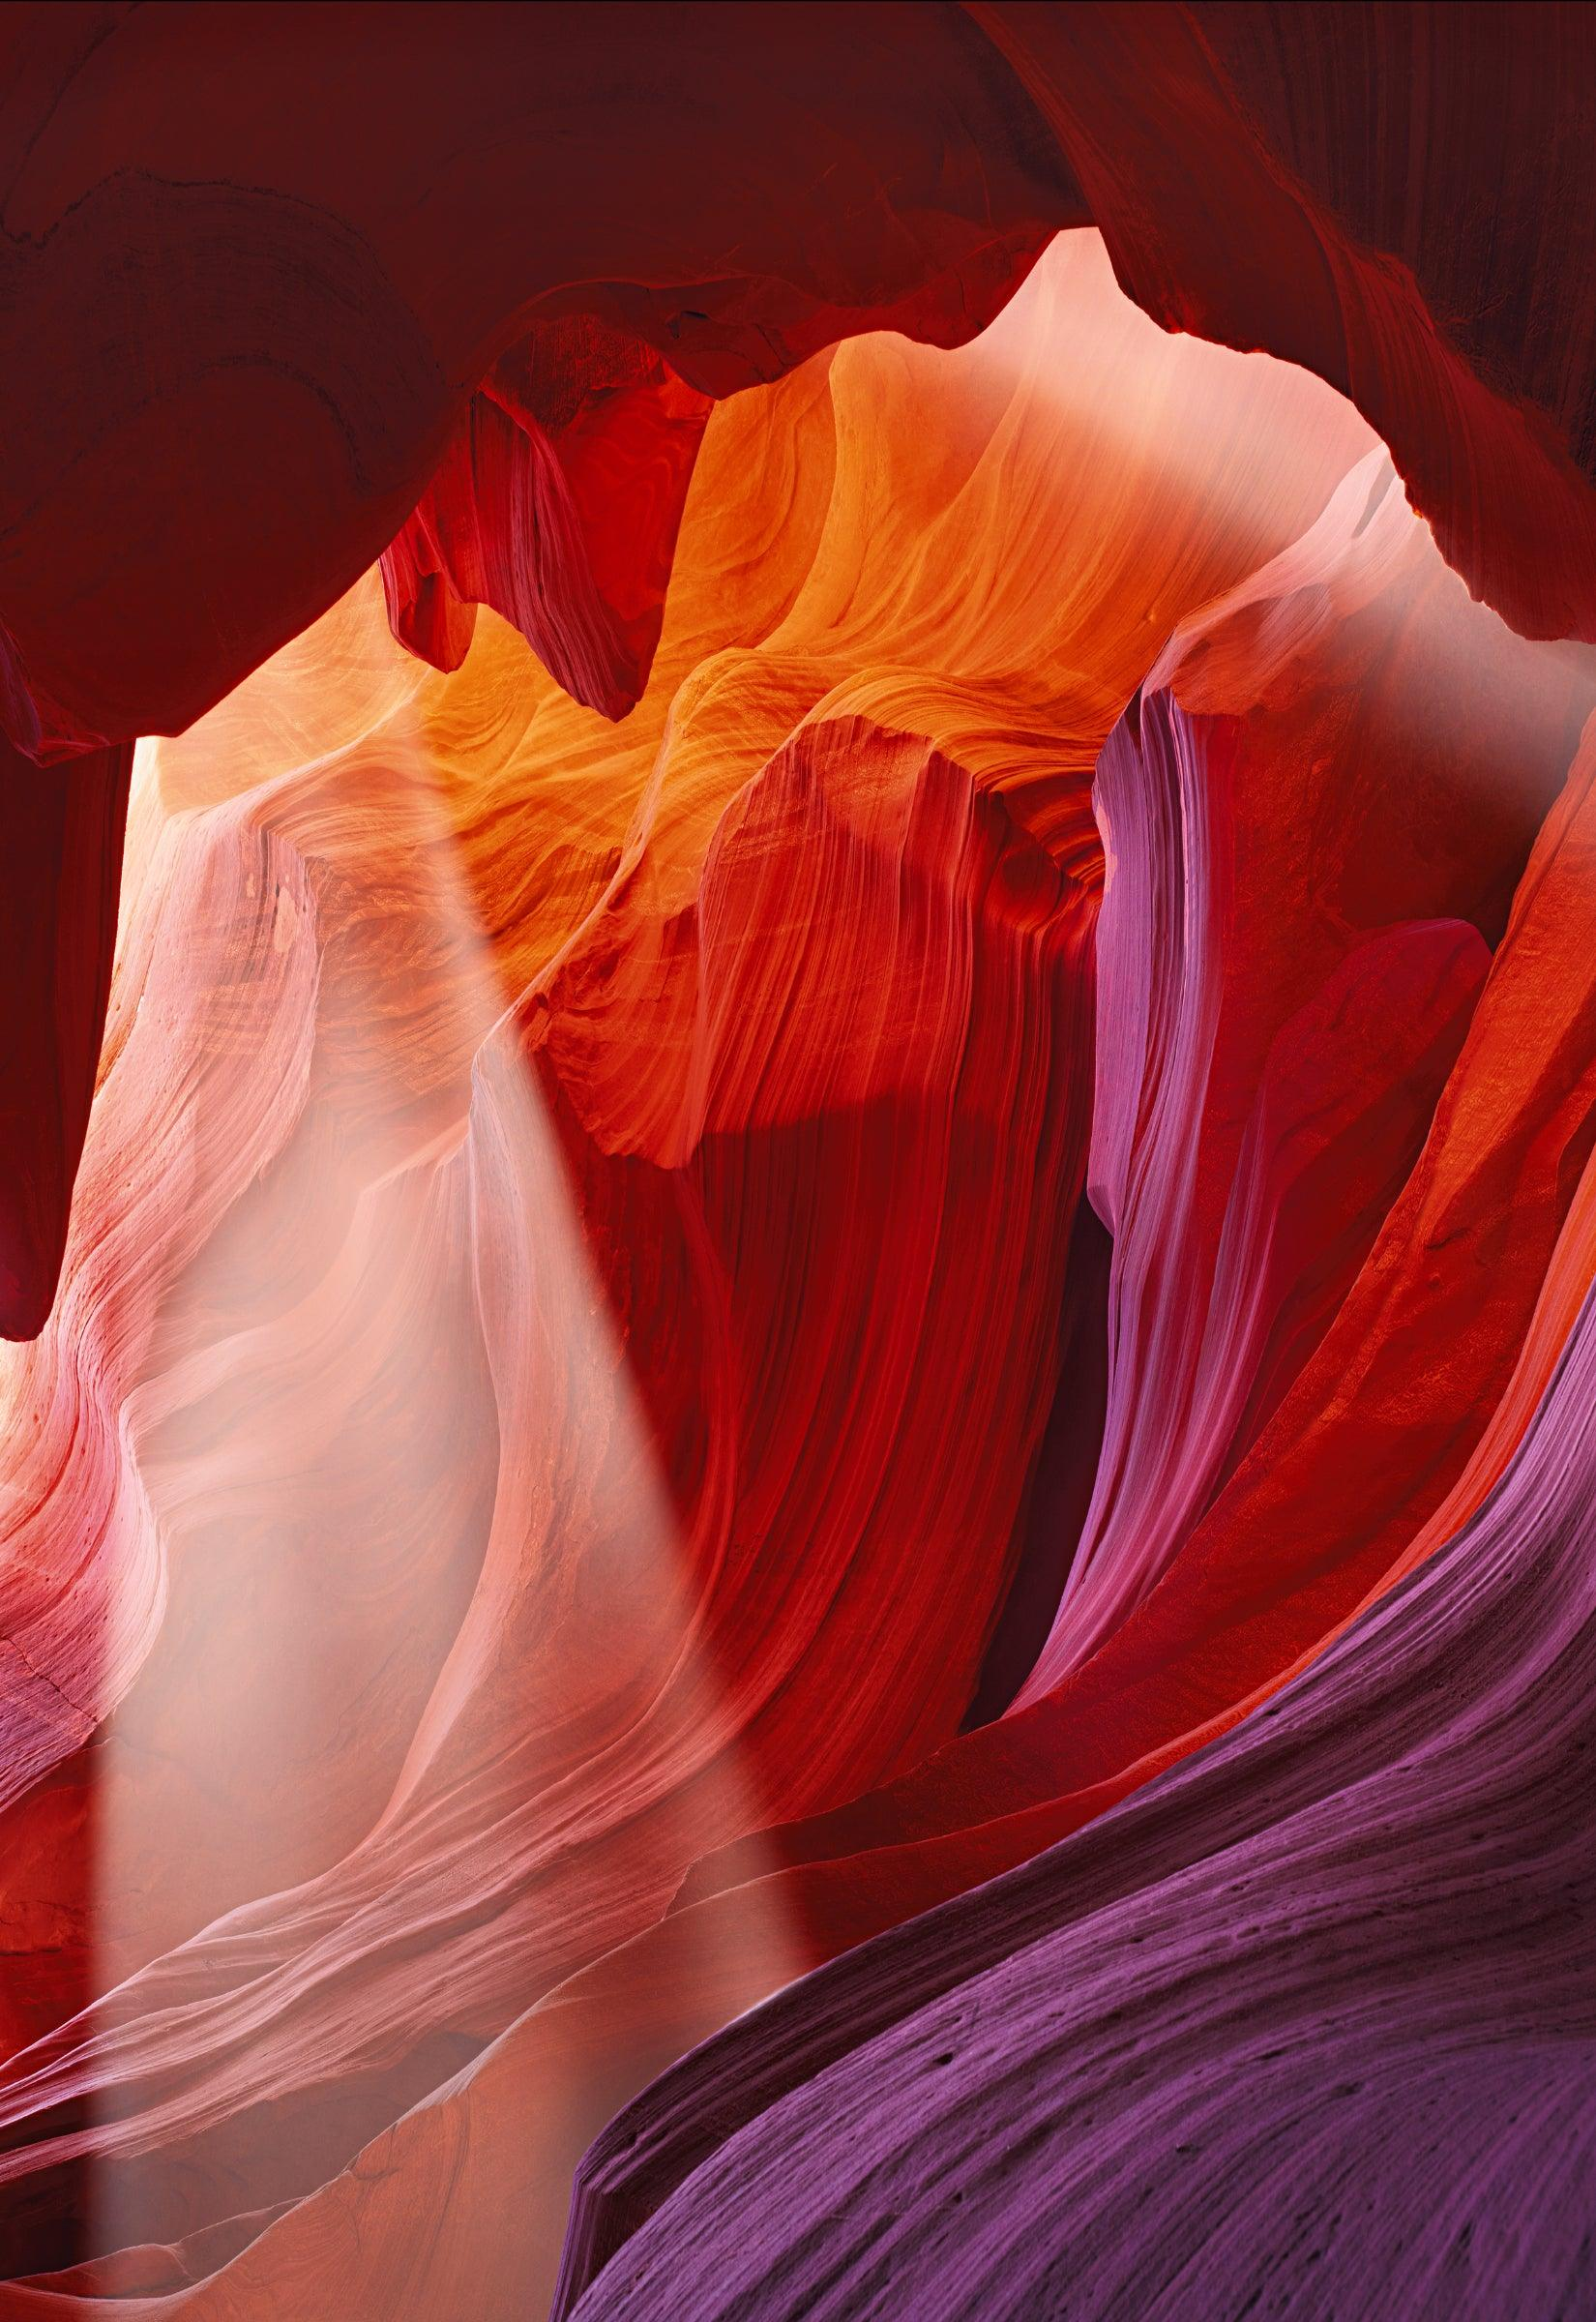 Sun rays shining into the red and pink wave shaped sandstone walls of the slot canyons in Antelope Canyon Arizona